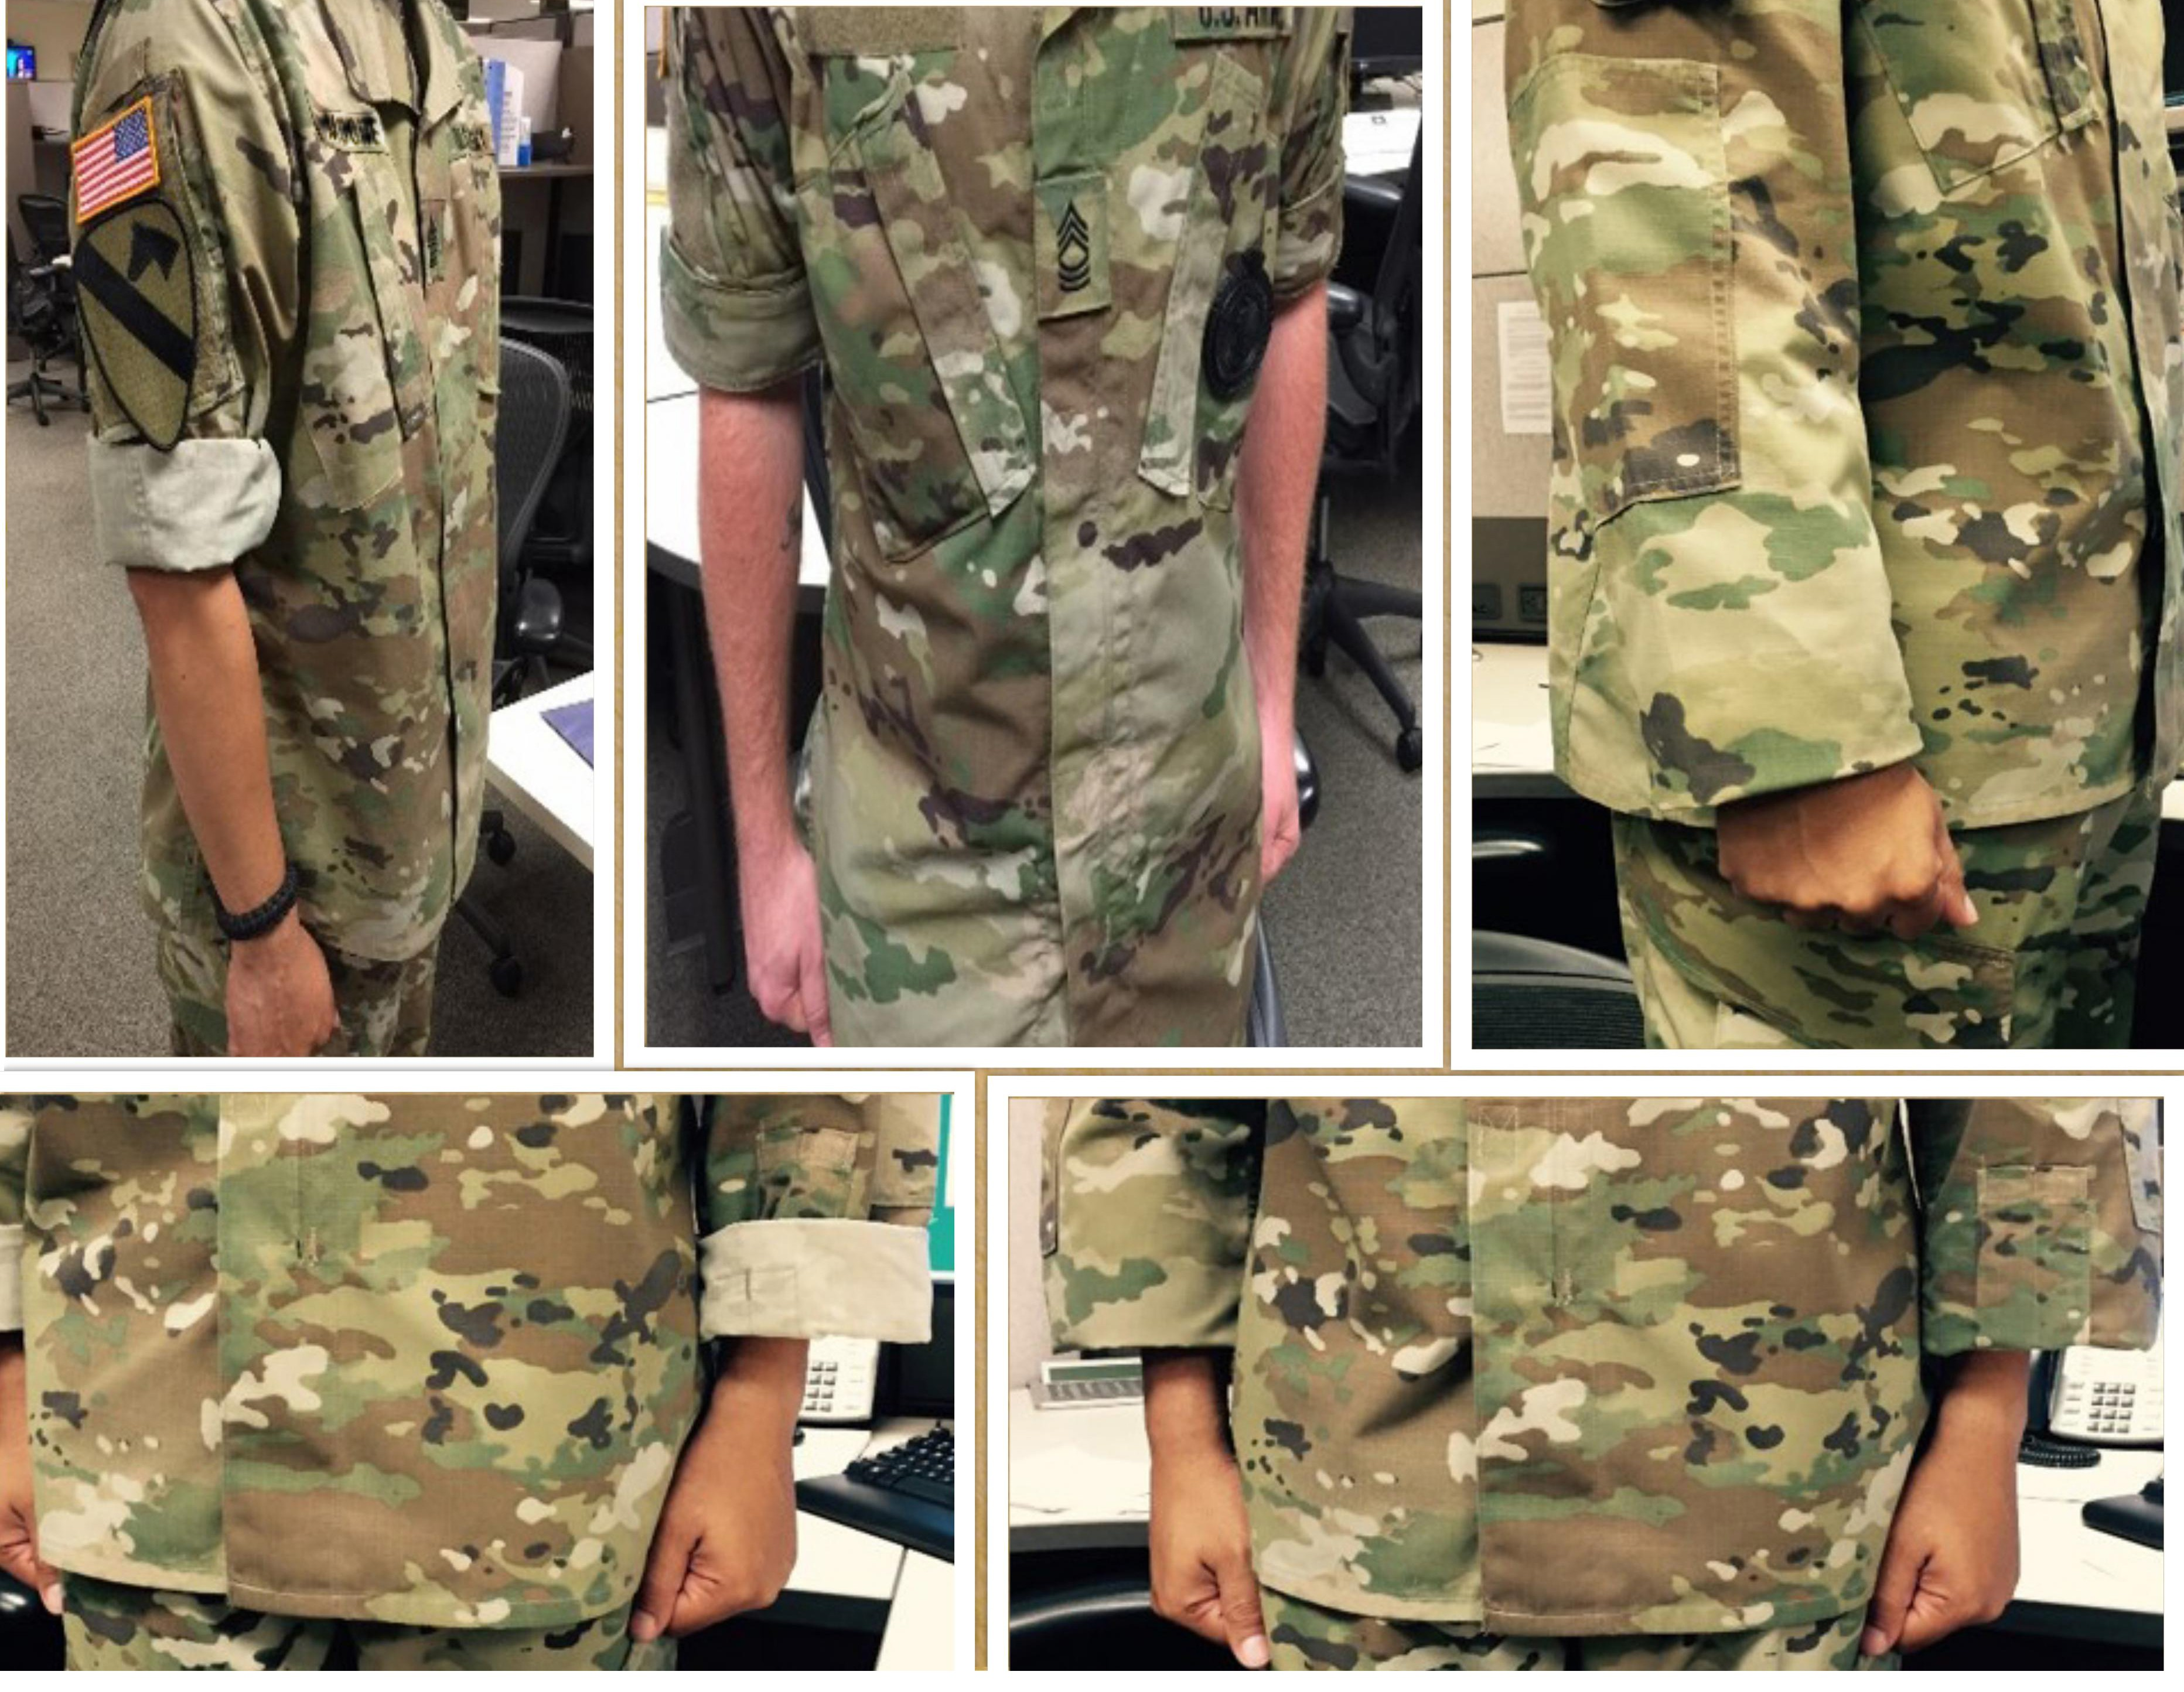 Army issues new guidance on rolling, cuffing sleeves